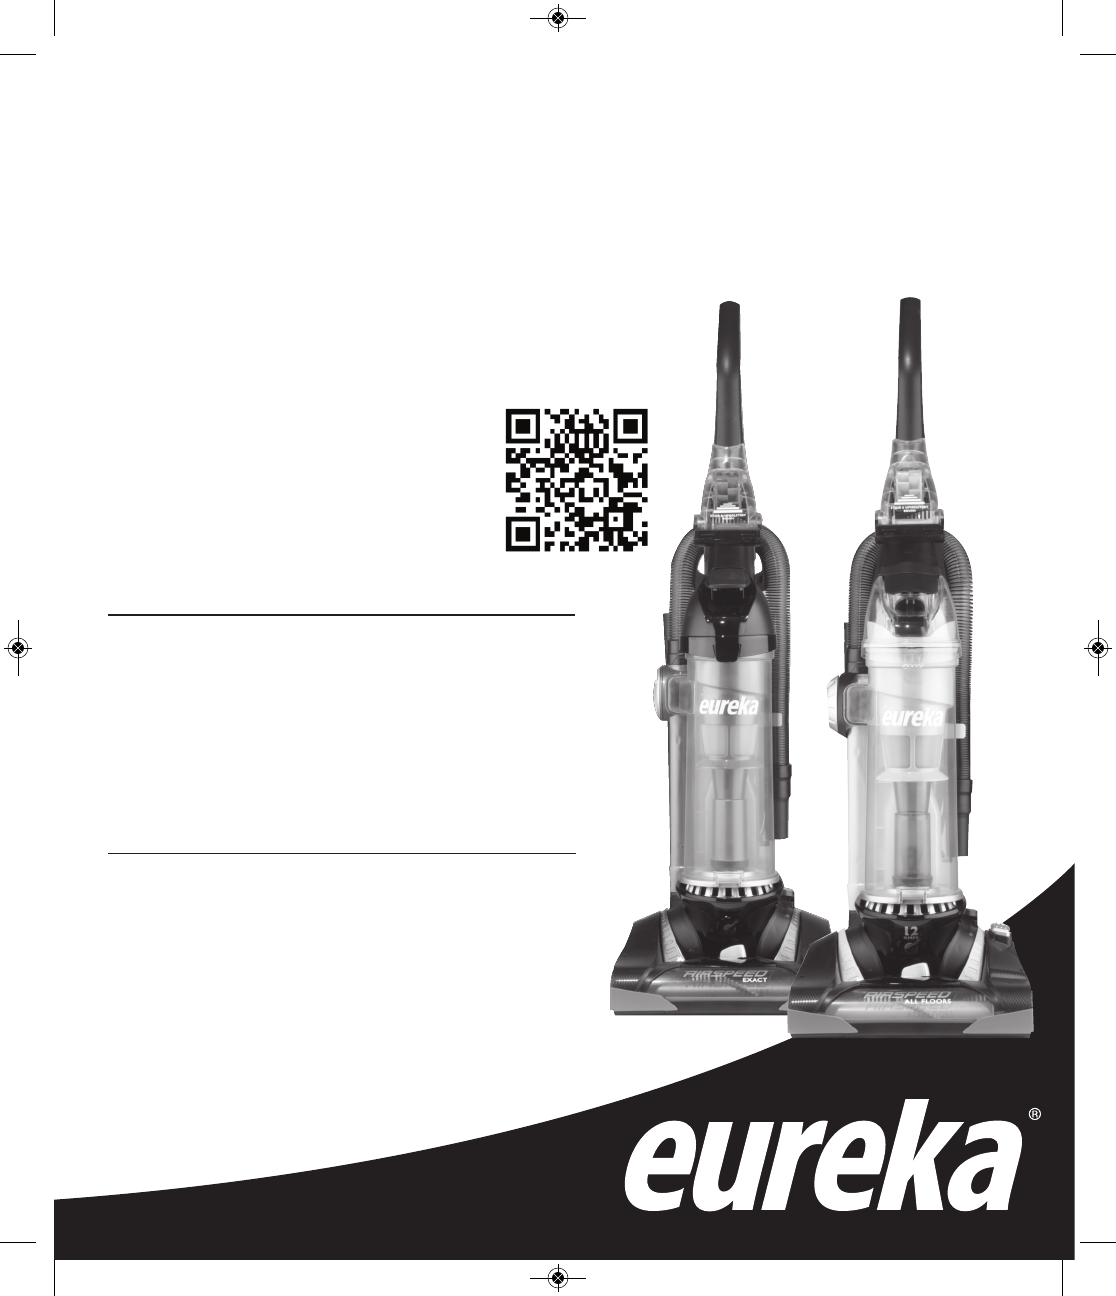 Eureka Automobile Accessories AS3001 AS3019 series User